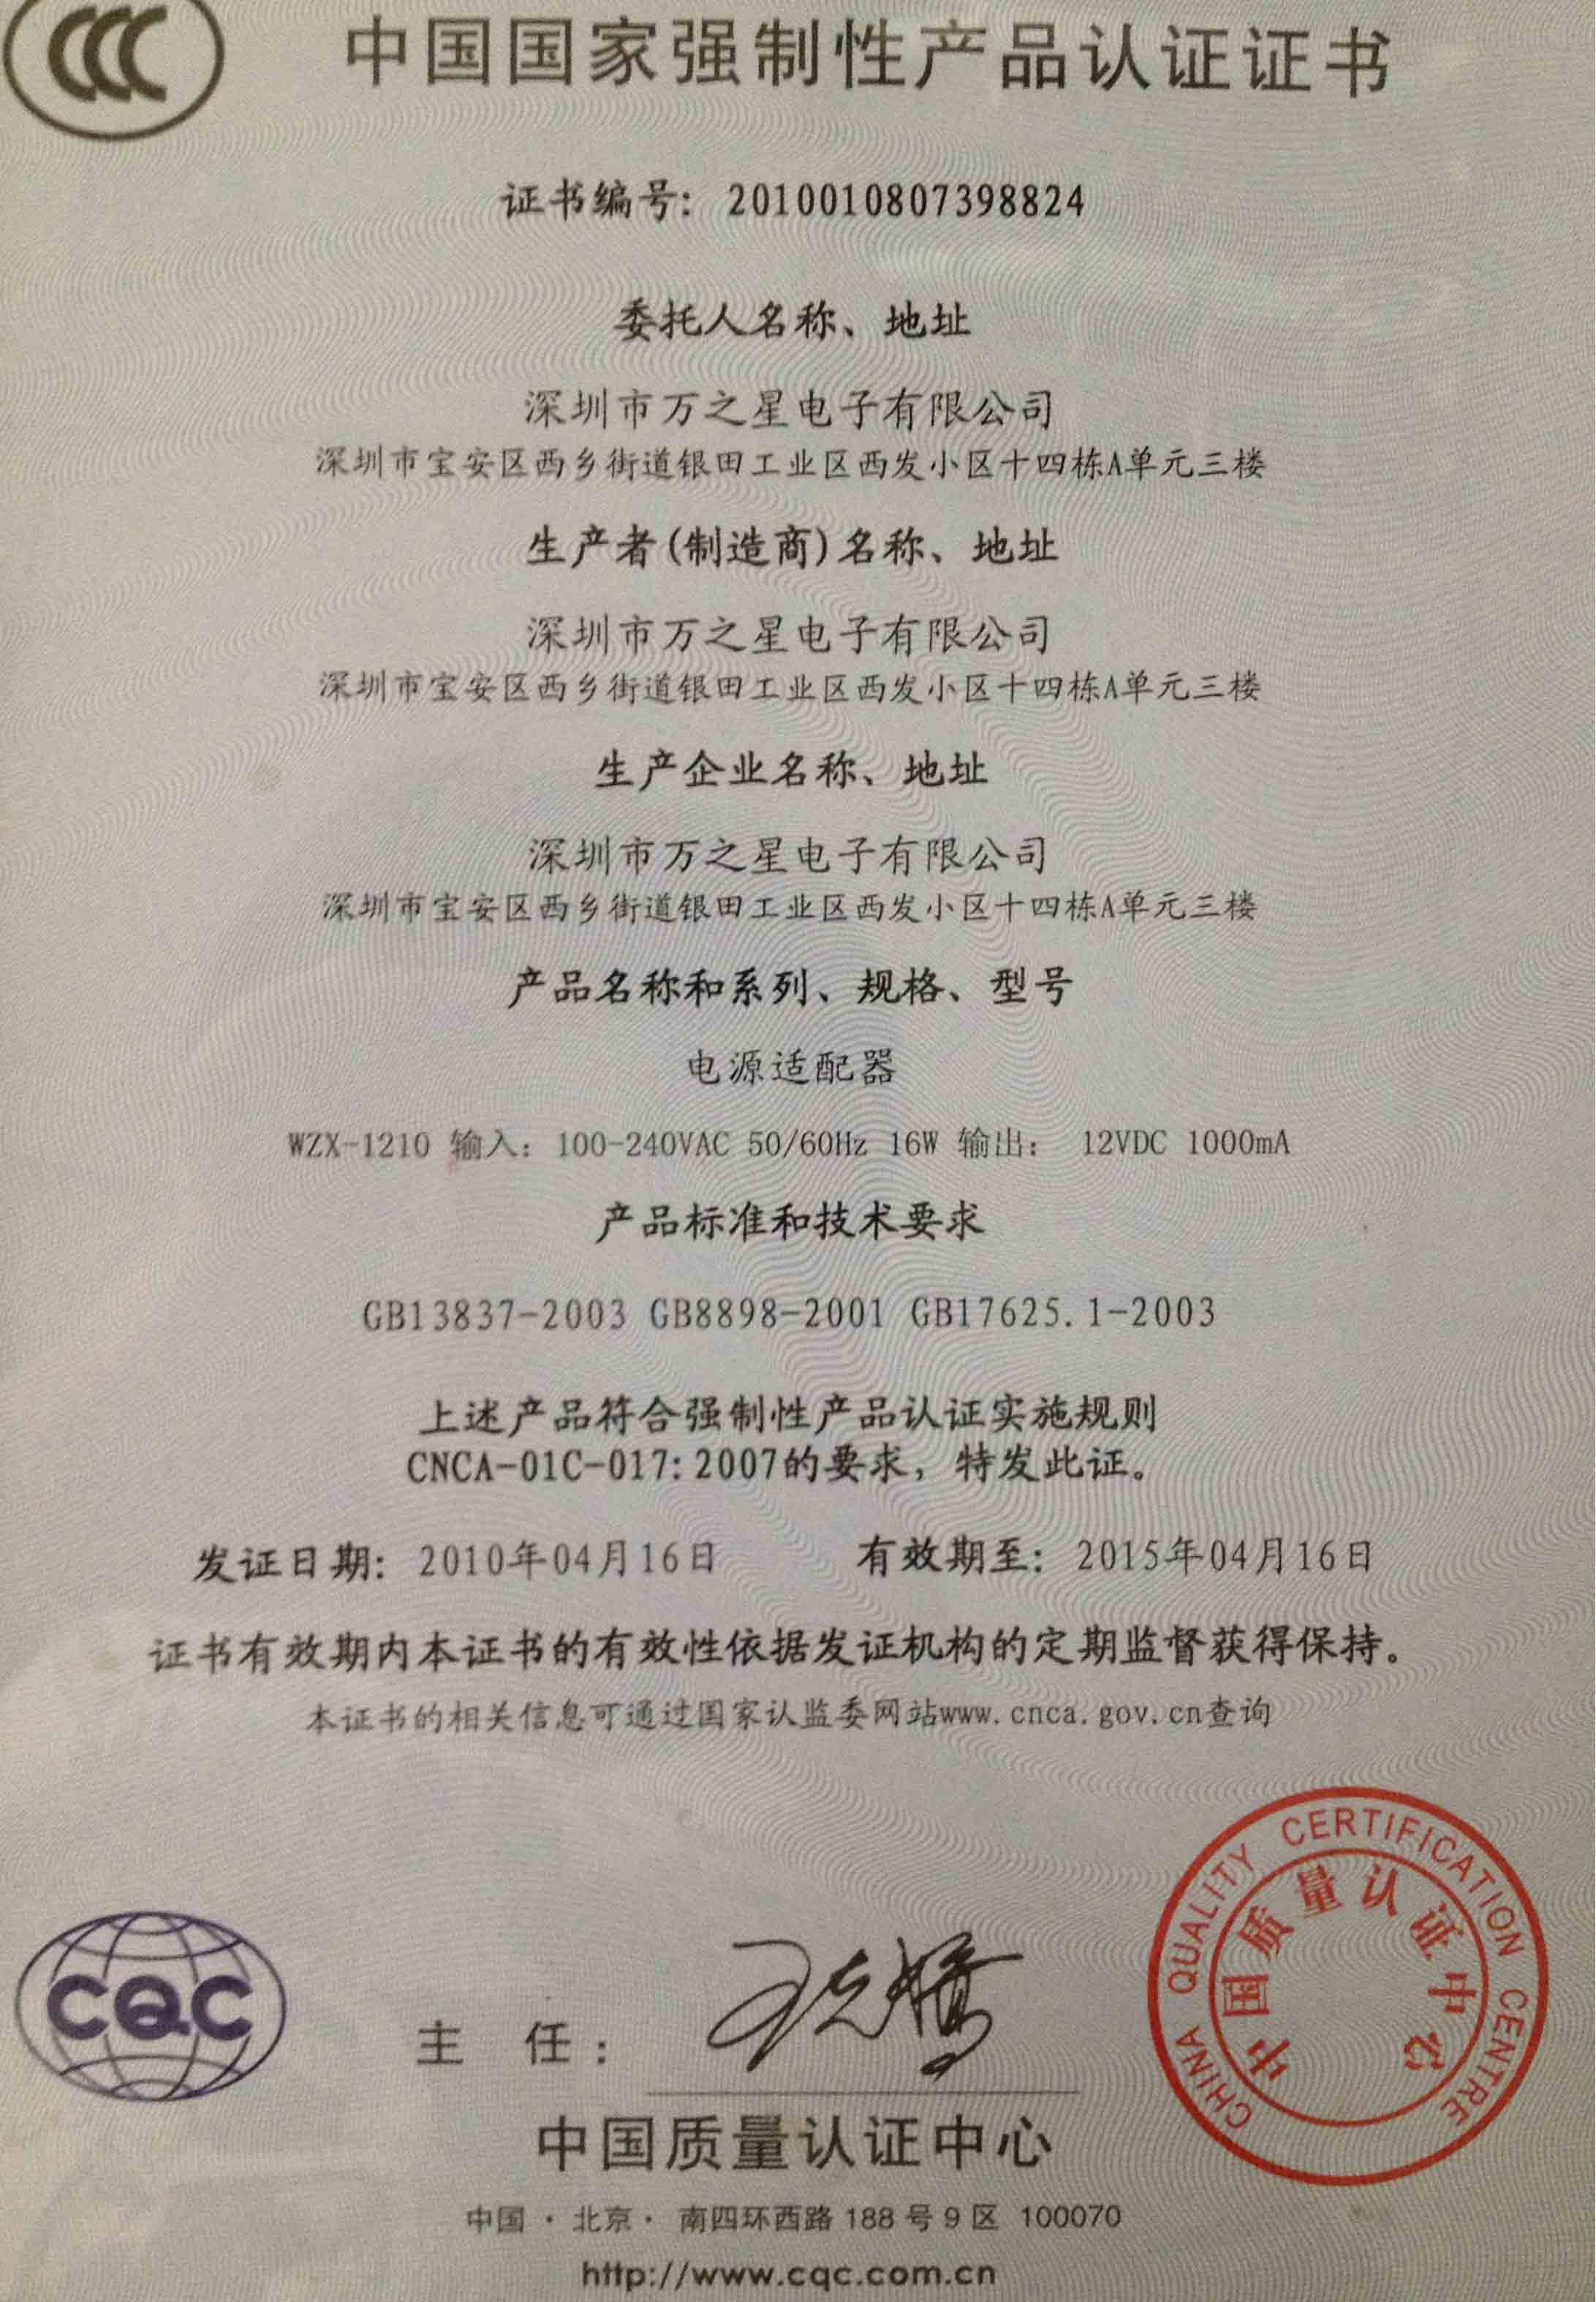 CCC Certificate for Power Adapter